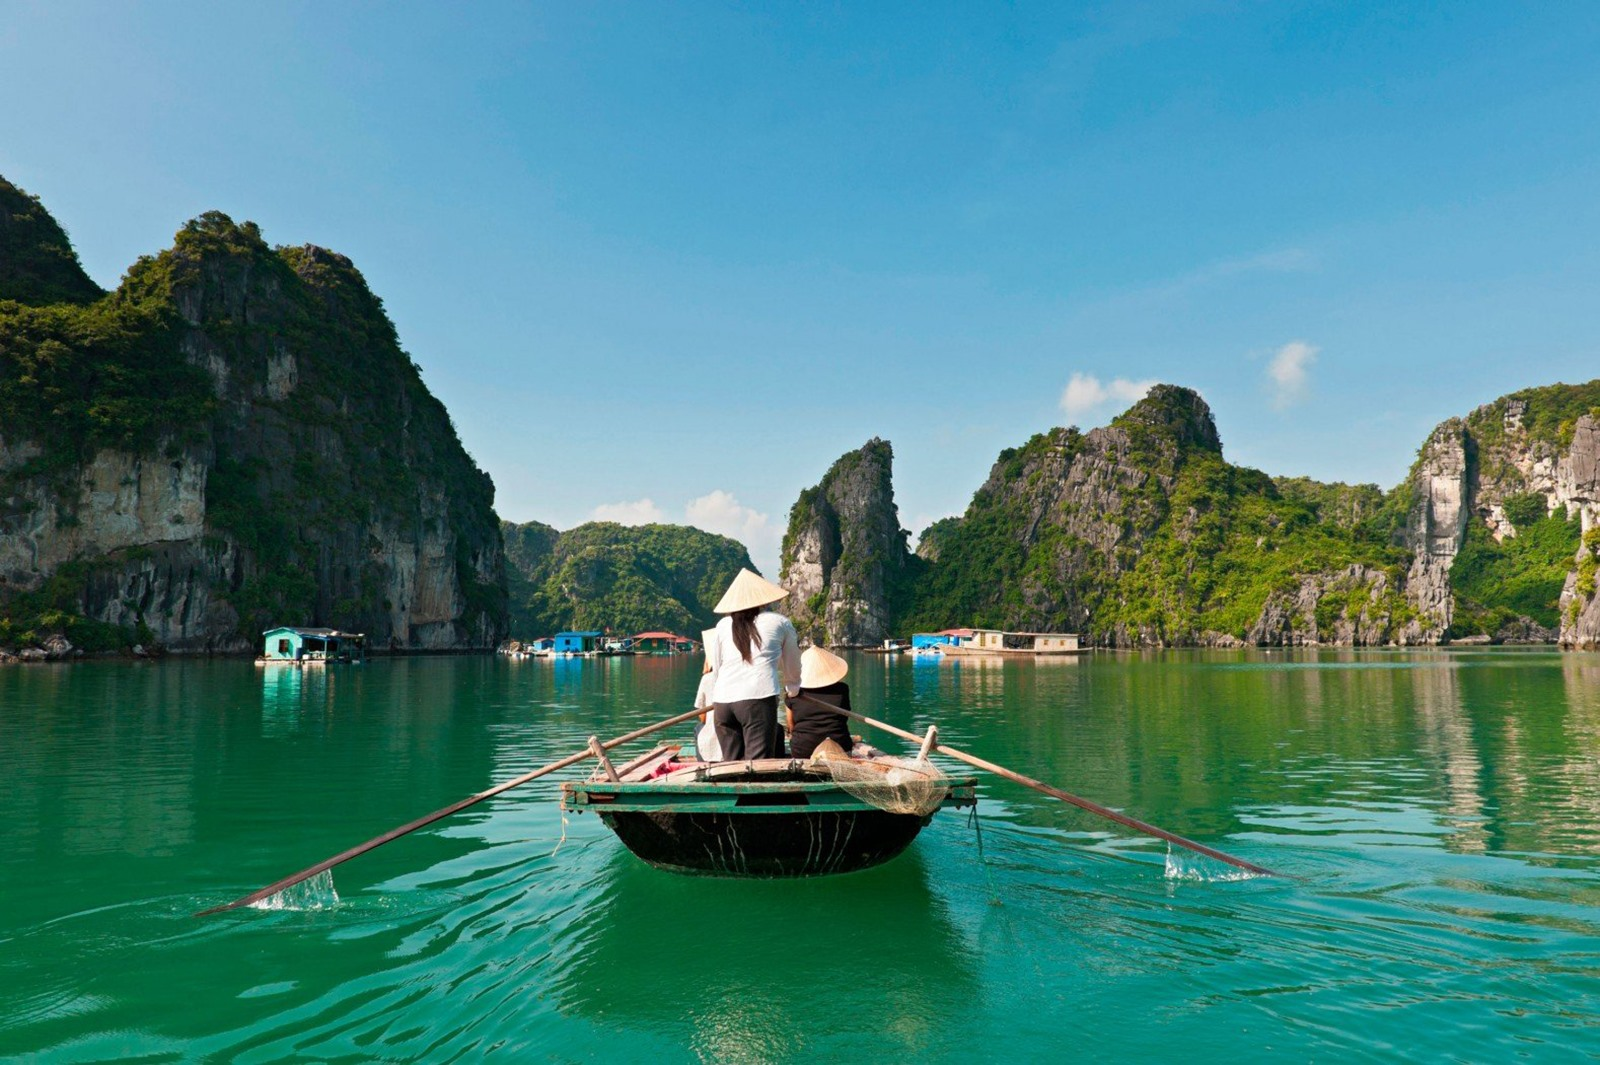 Ha Long Bay was recognized as a world natural heritage by UNESCO in 1994. It is considered as one of the best seacapes in the world.